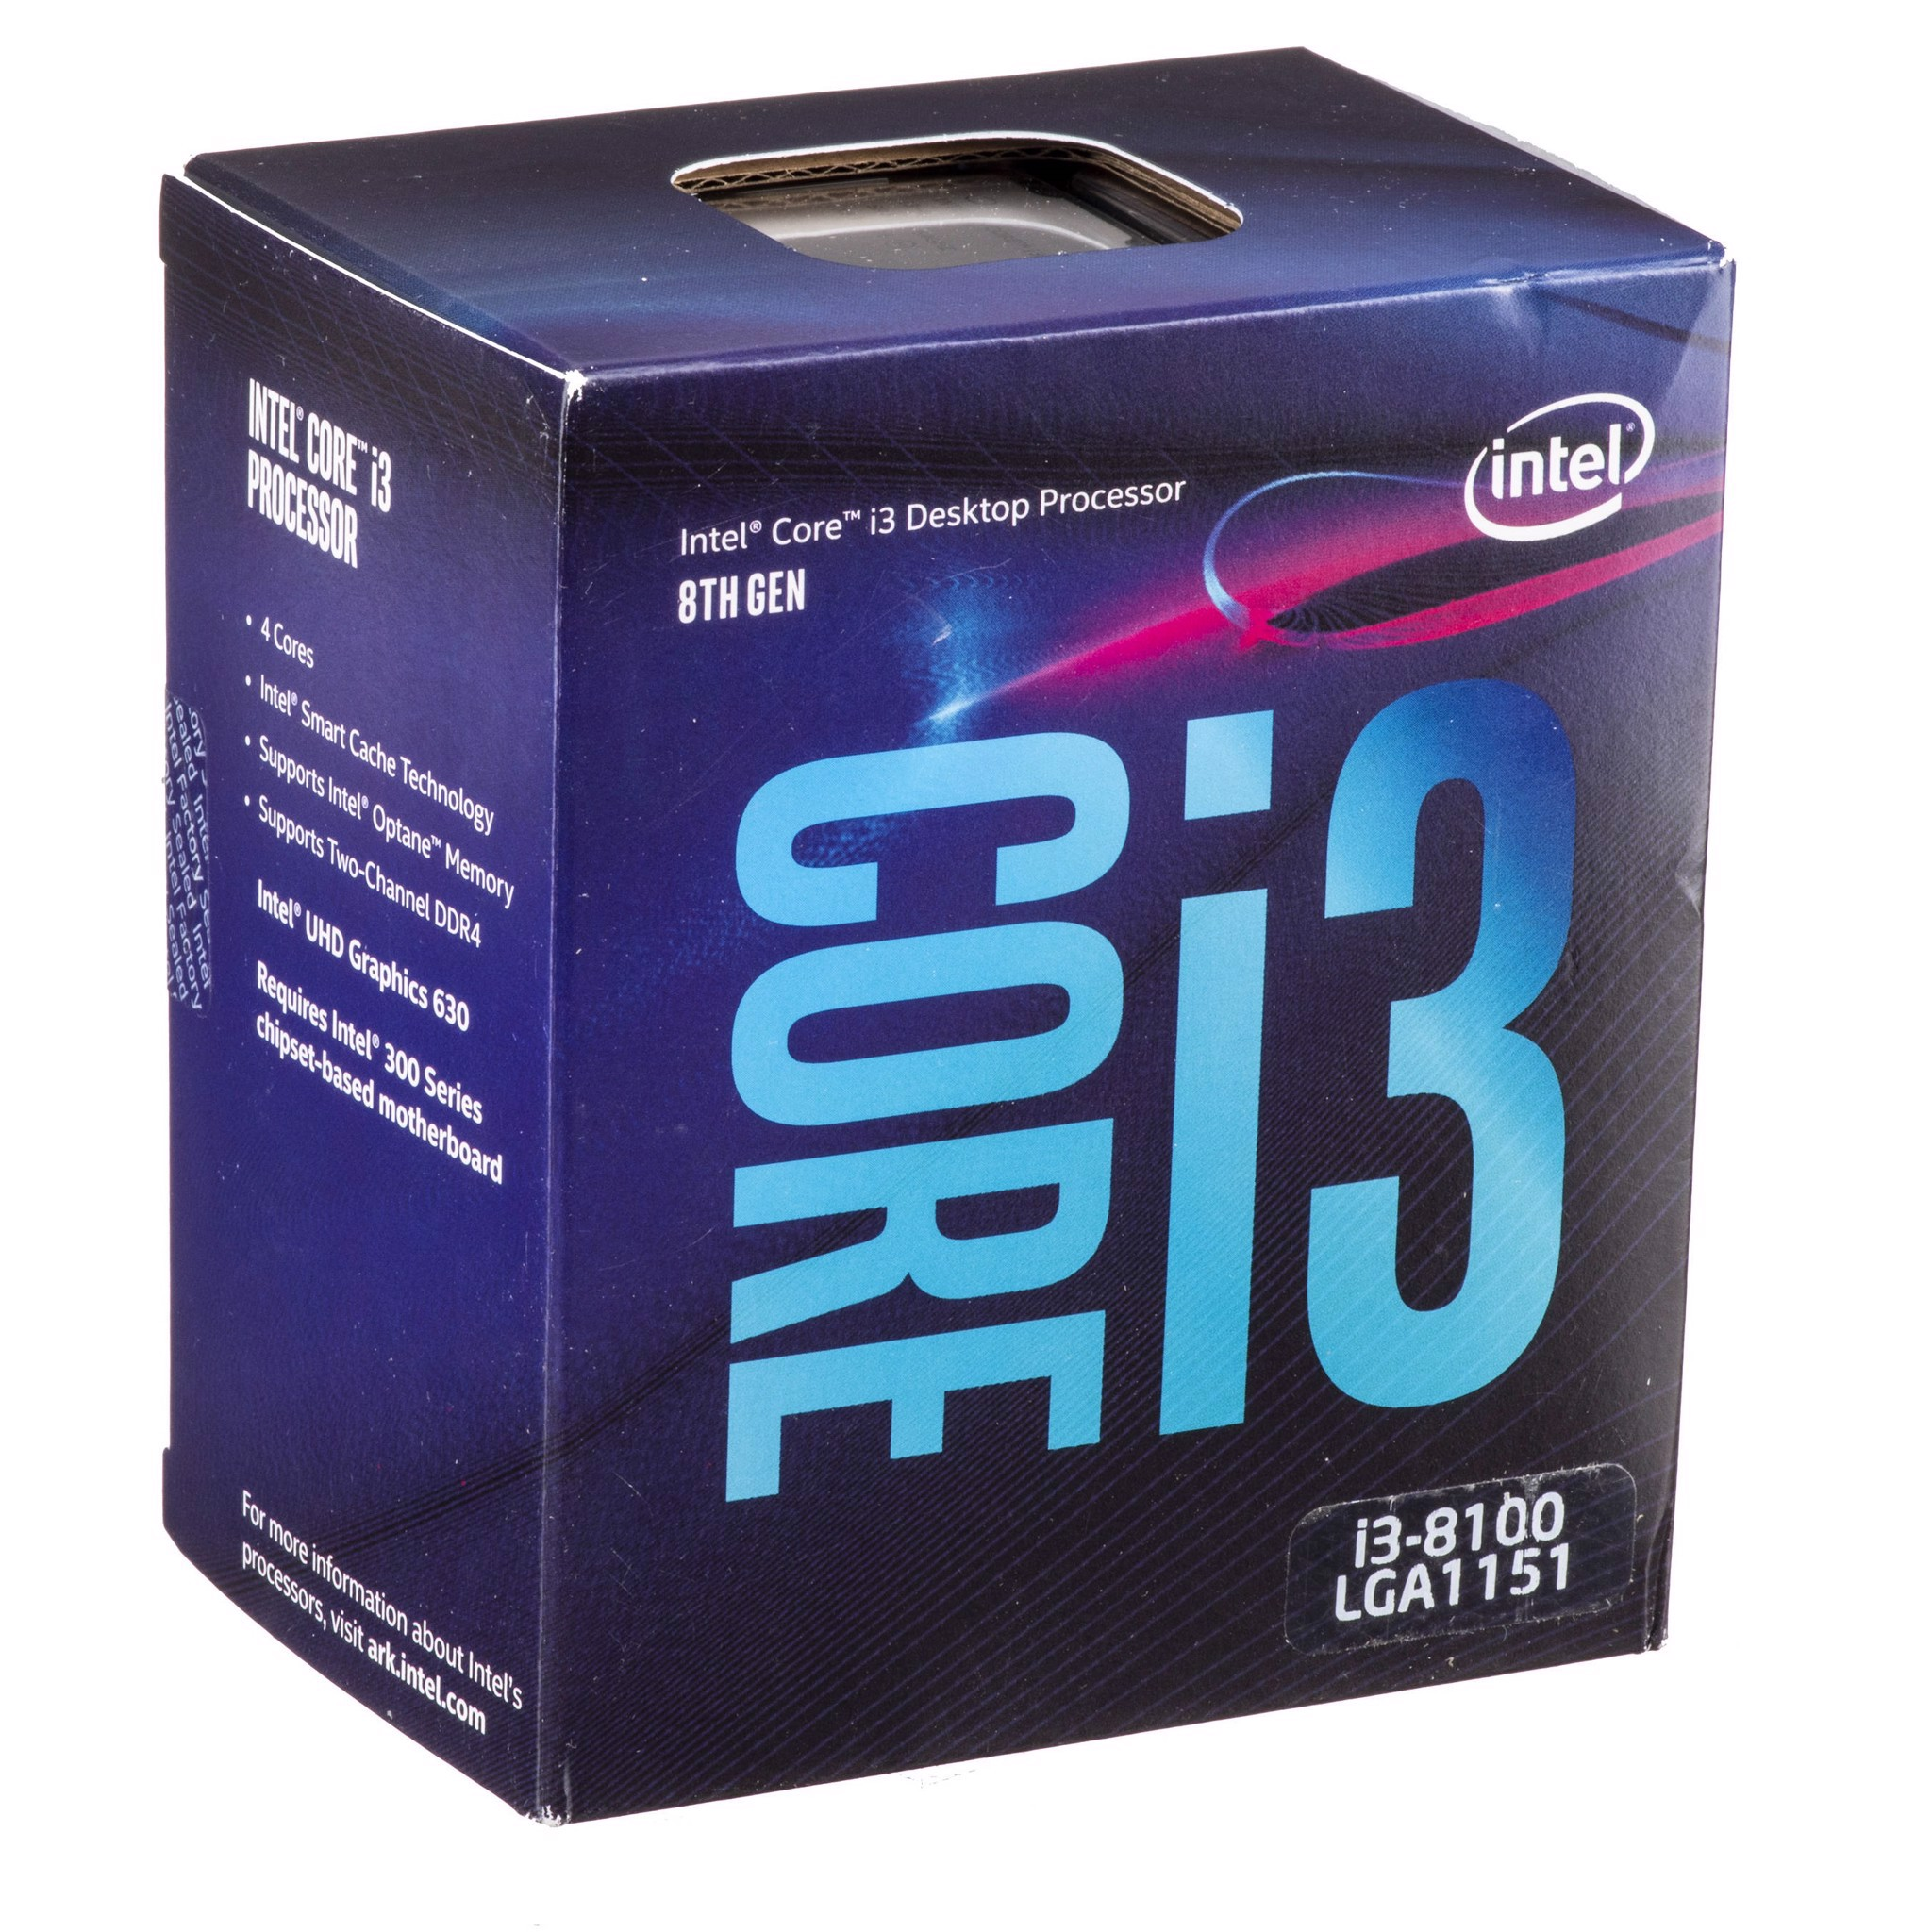 CPU Intel Core i3 8100 (3.60Ghz/ 6Mb cache) Coffee Lake